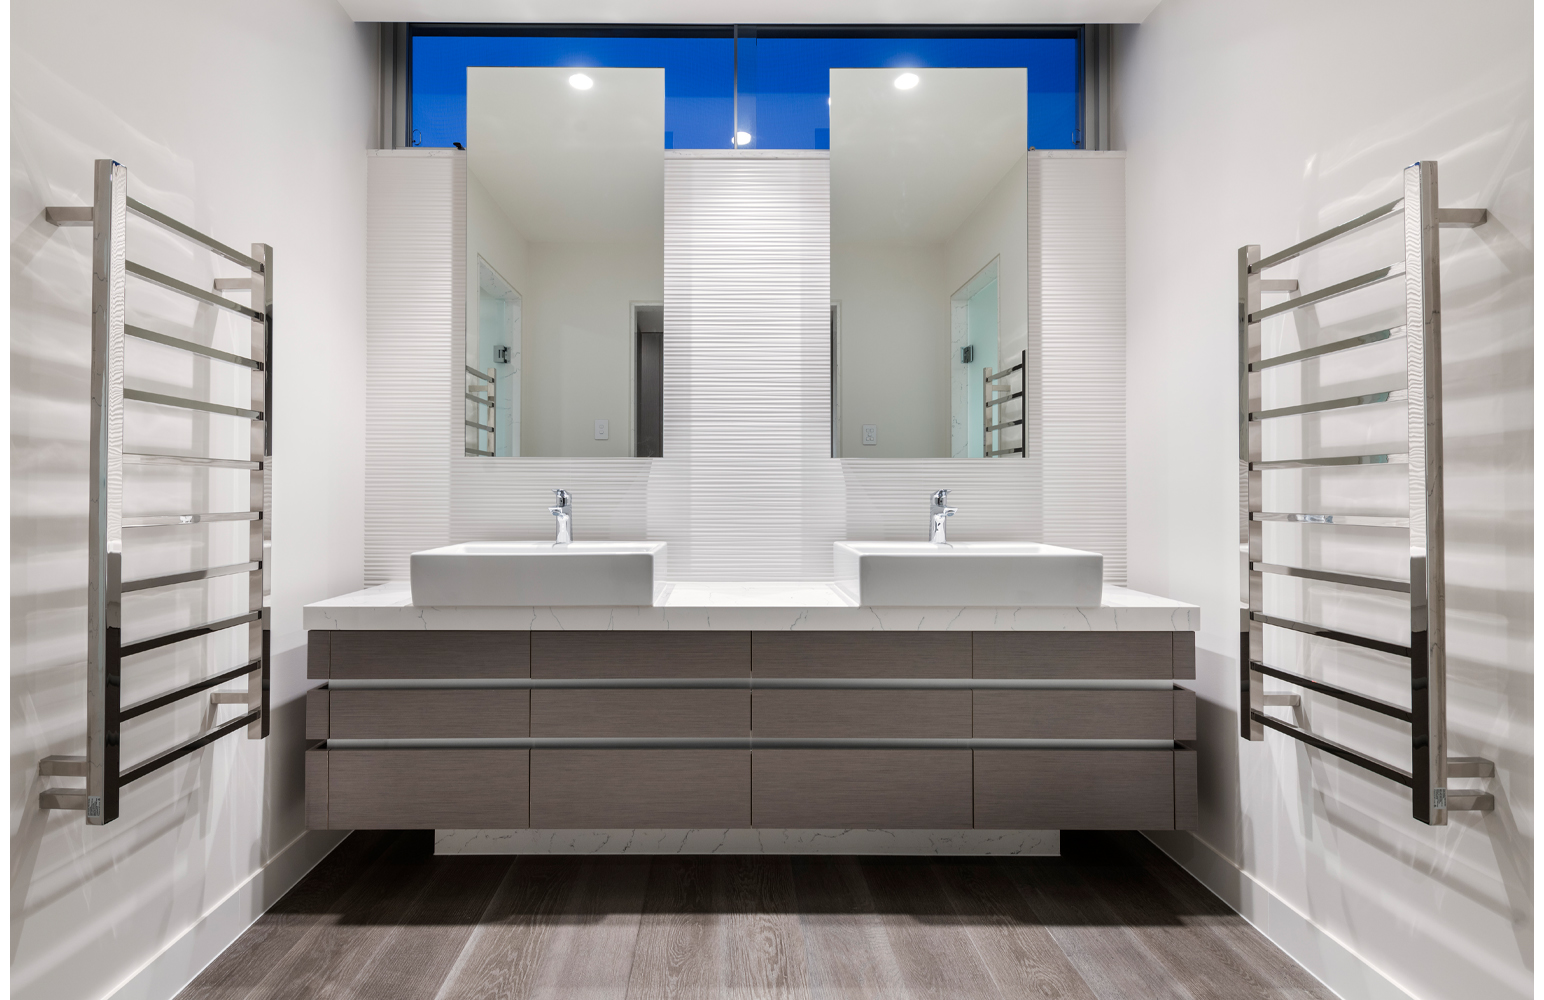 maek-luxury-home-design-inspiration-jolimont-bathroom-10.jpg